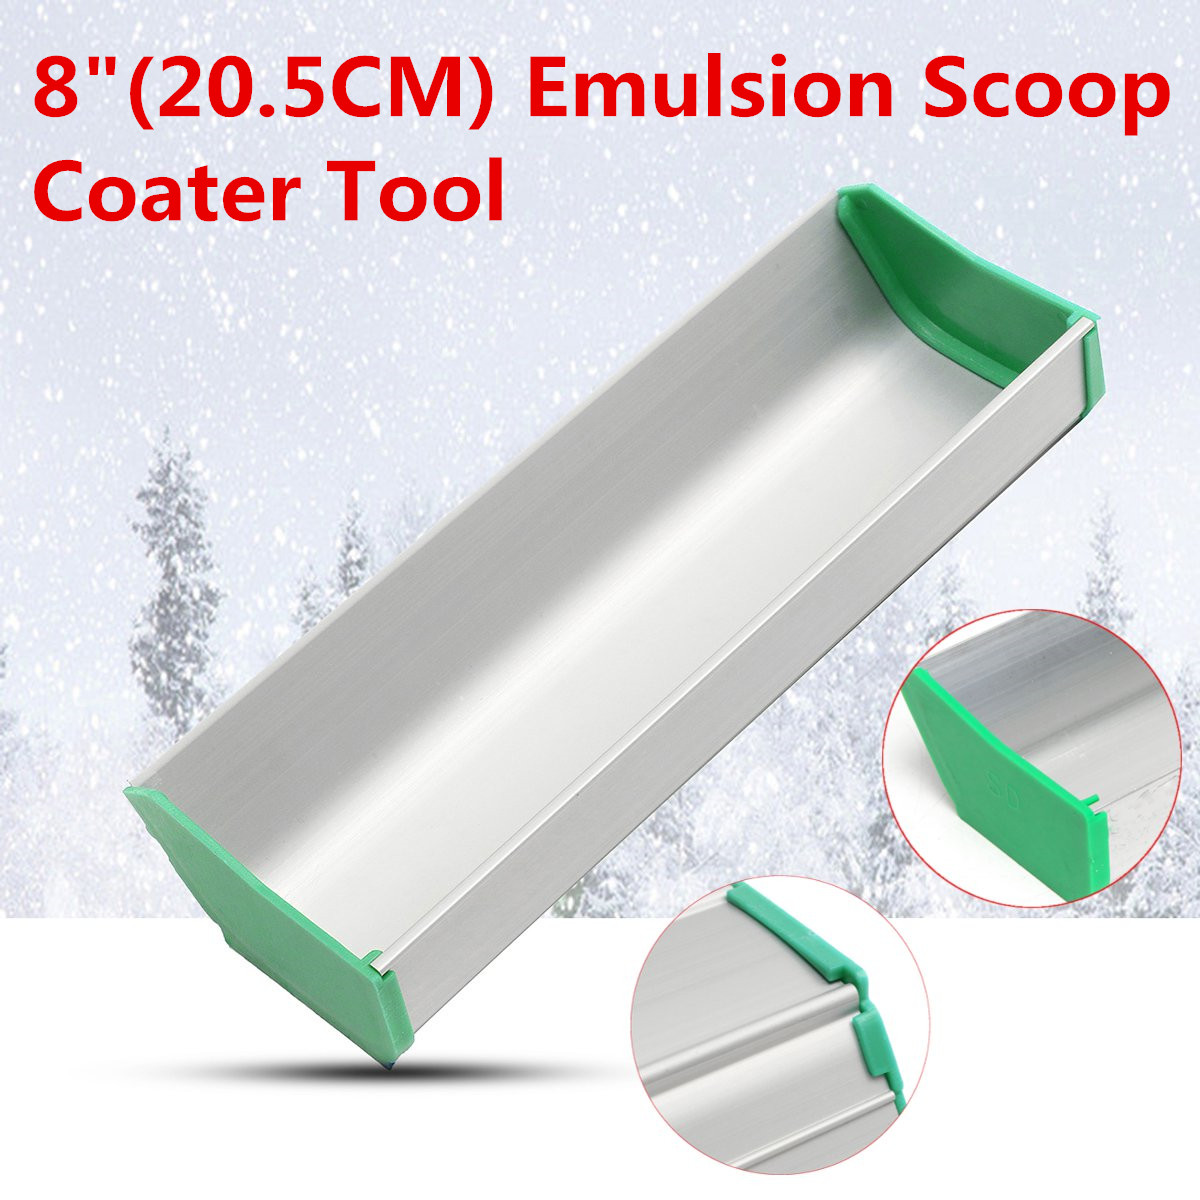 8 Inch Emulsion Scoop Coater Tool Silk Screen Printing